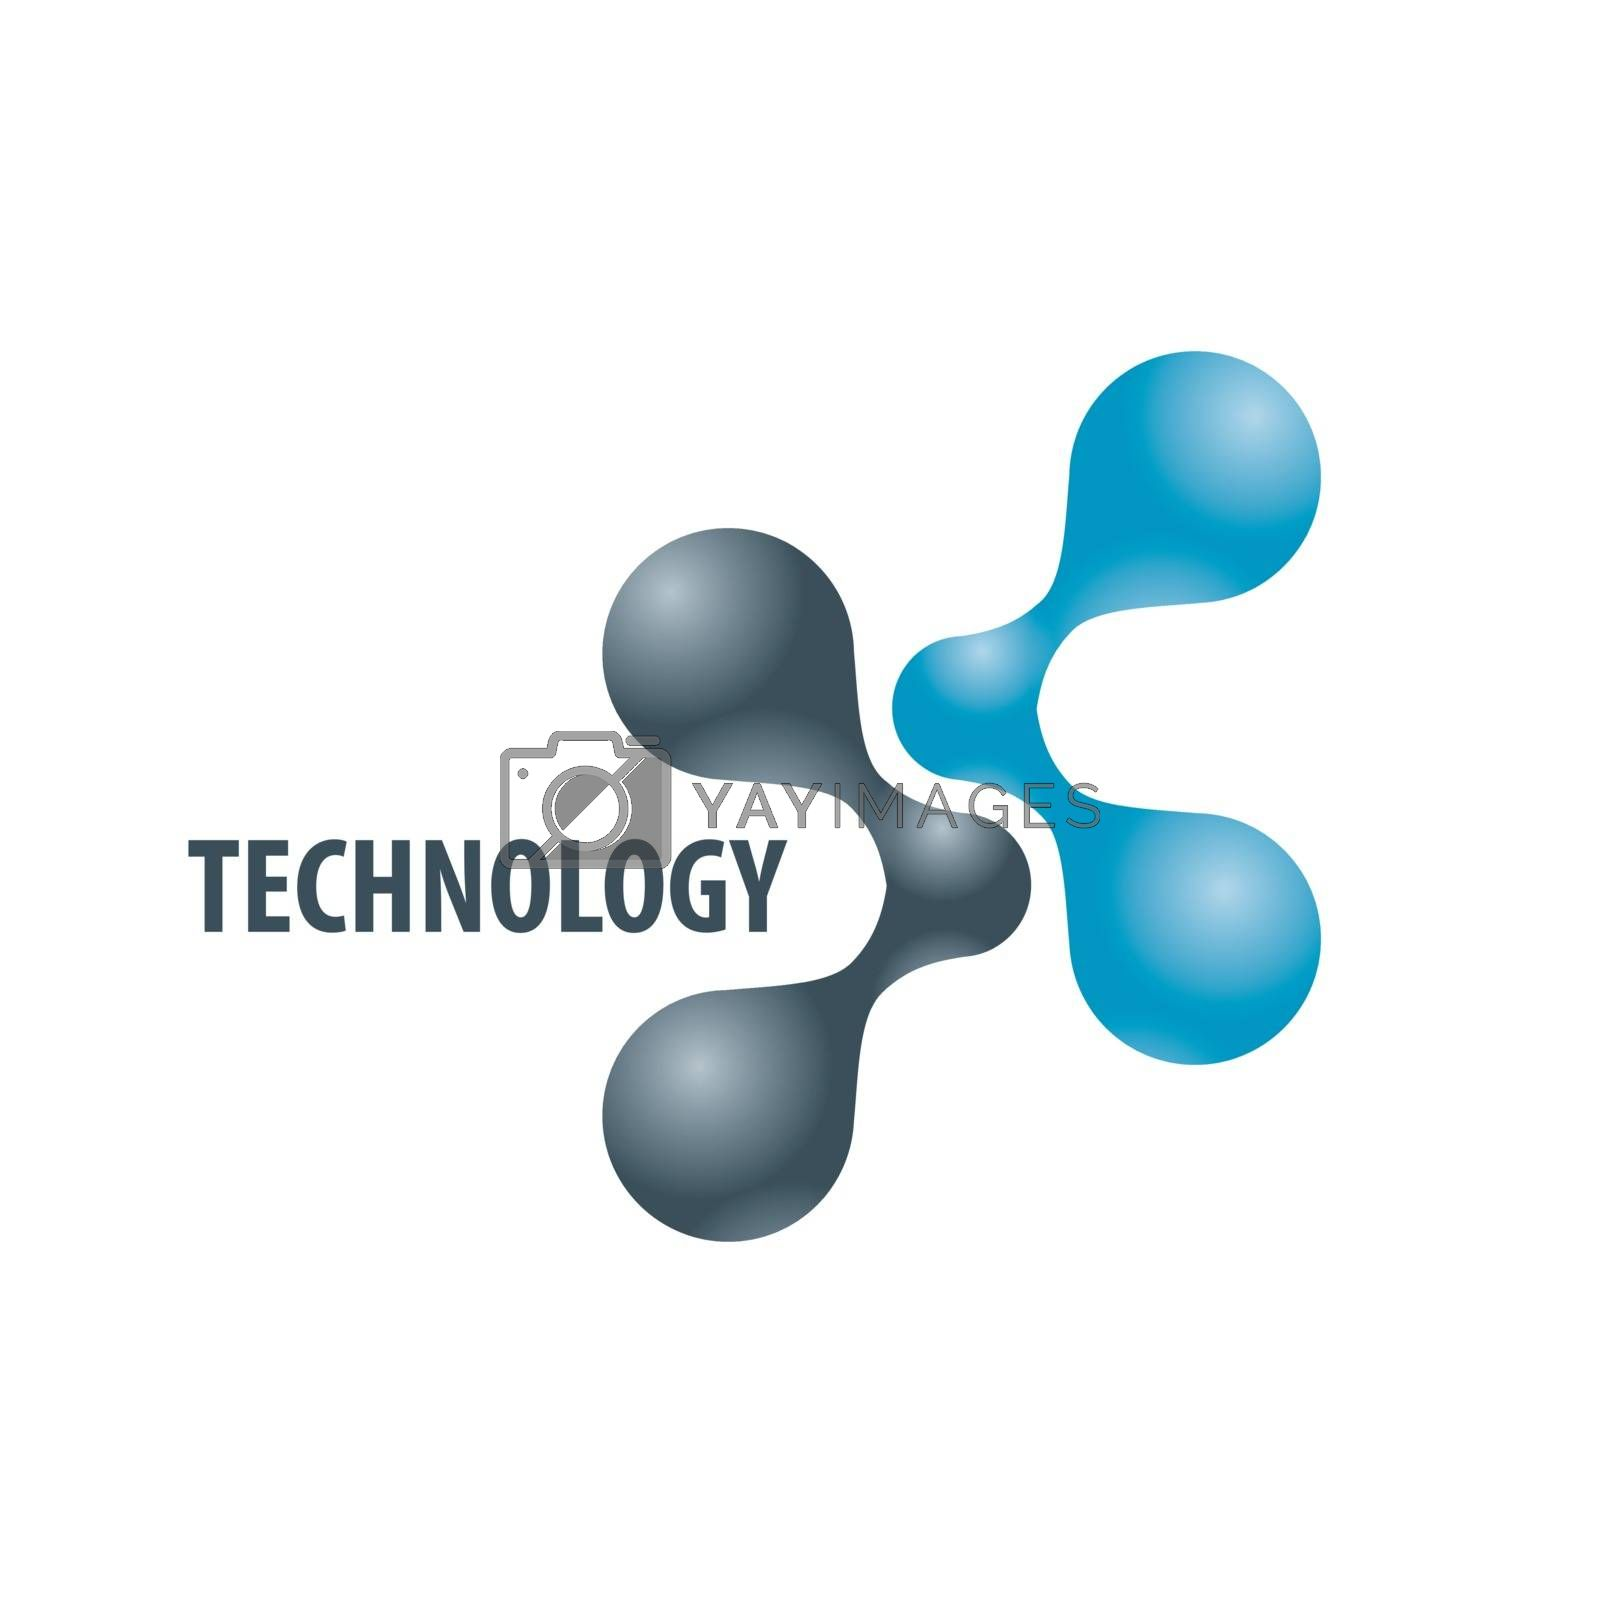 Technology logo in the form of atoms2 by Butenkov